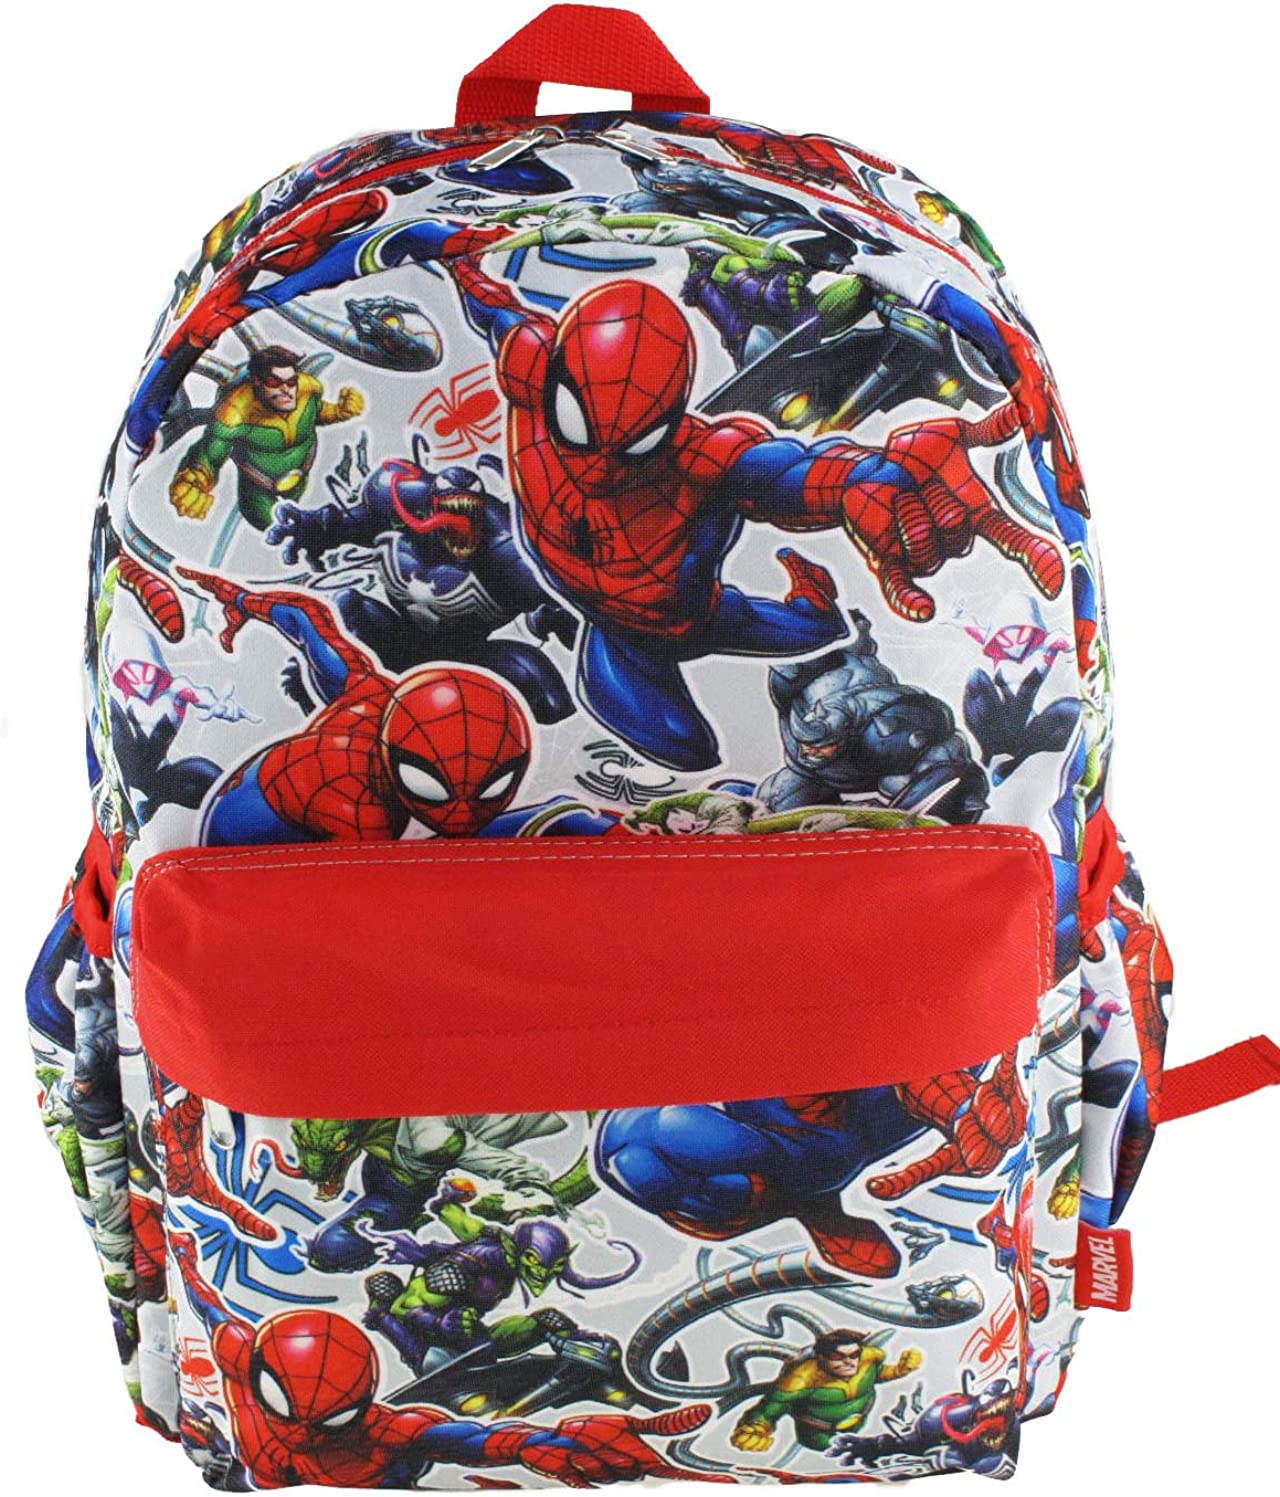 Marvel Spiderman 16 inch All Over Print Deluxe Backpack With Laptop Compartment